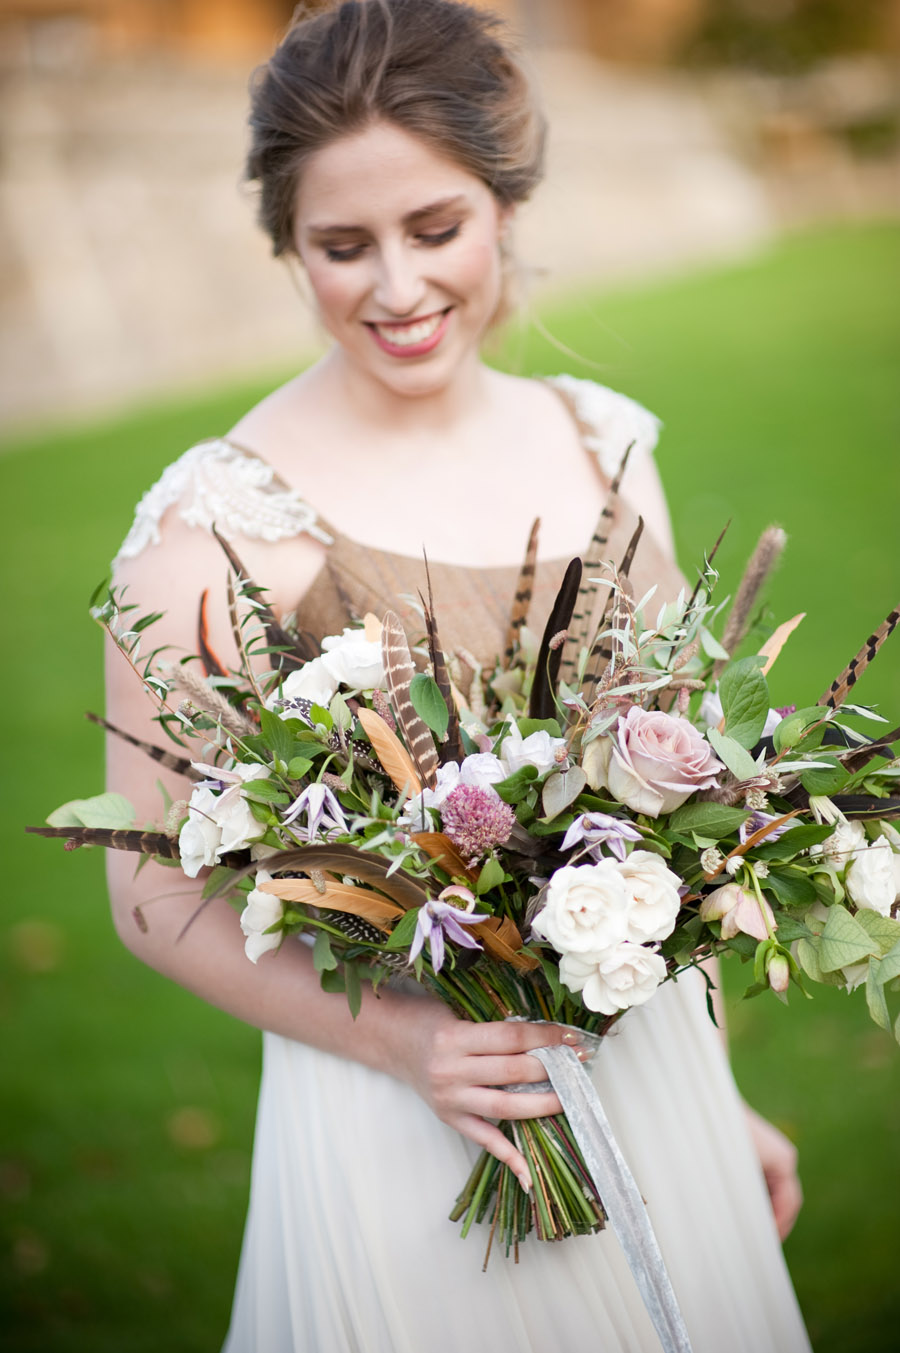 Luxe, modern wedding style ideas by Natalie Hewitt, image credit Rachael Connerton Photography (32)